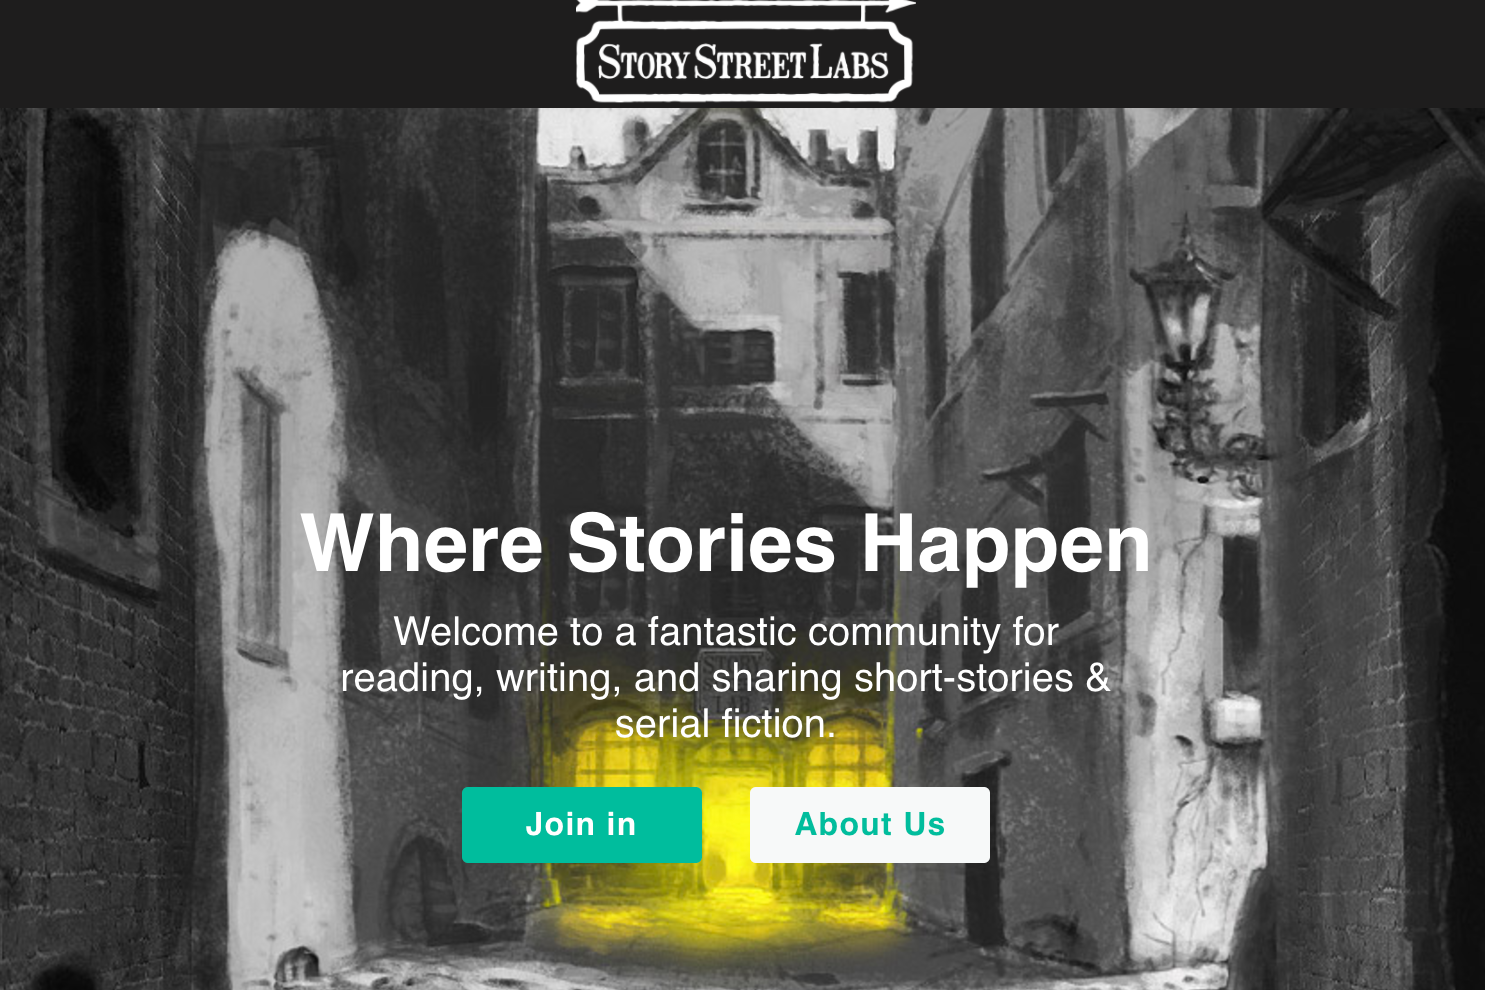 Story-Street-Labs-492688-edited.png